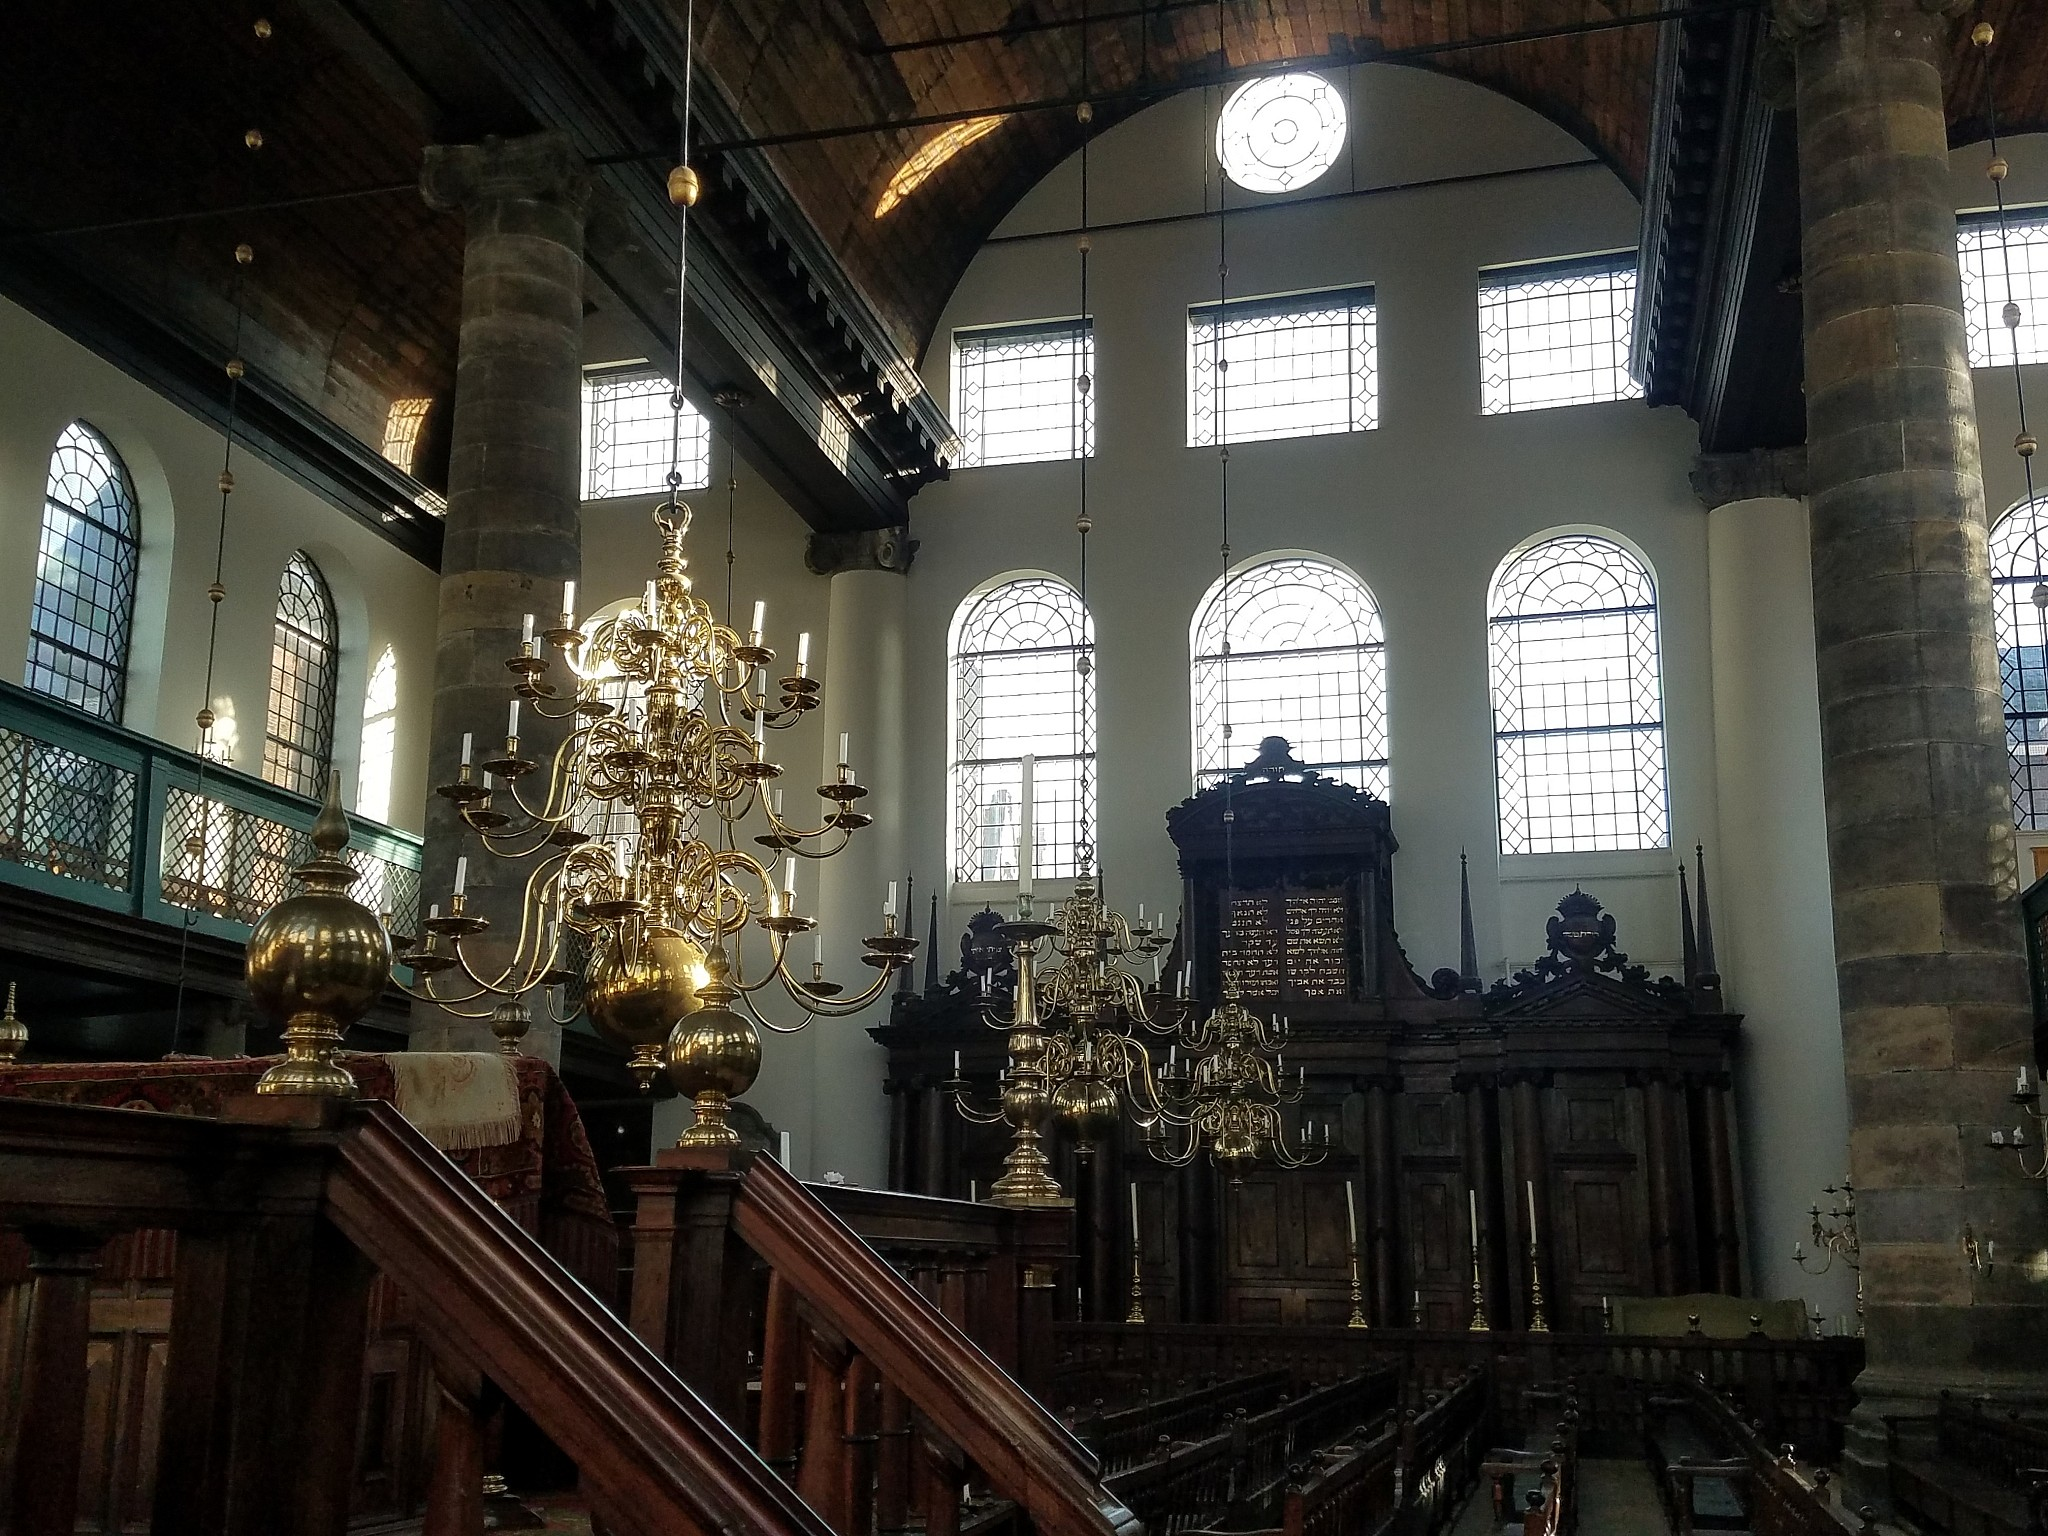 Amsterdam Interior Why Amsterdam S Beloved Nickname Is A Centuries Old Yiddish Word